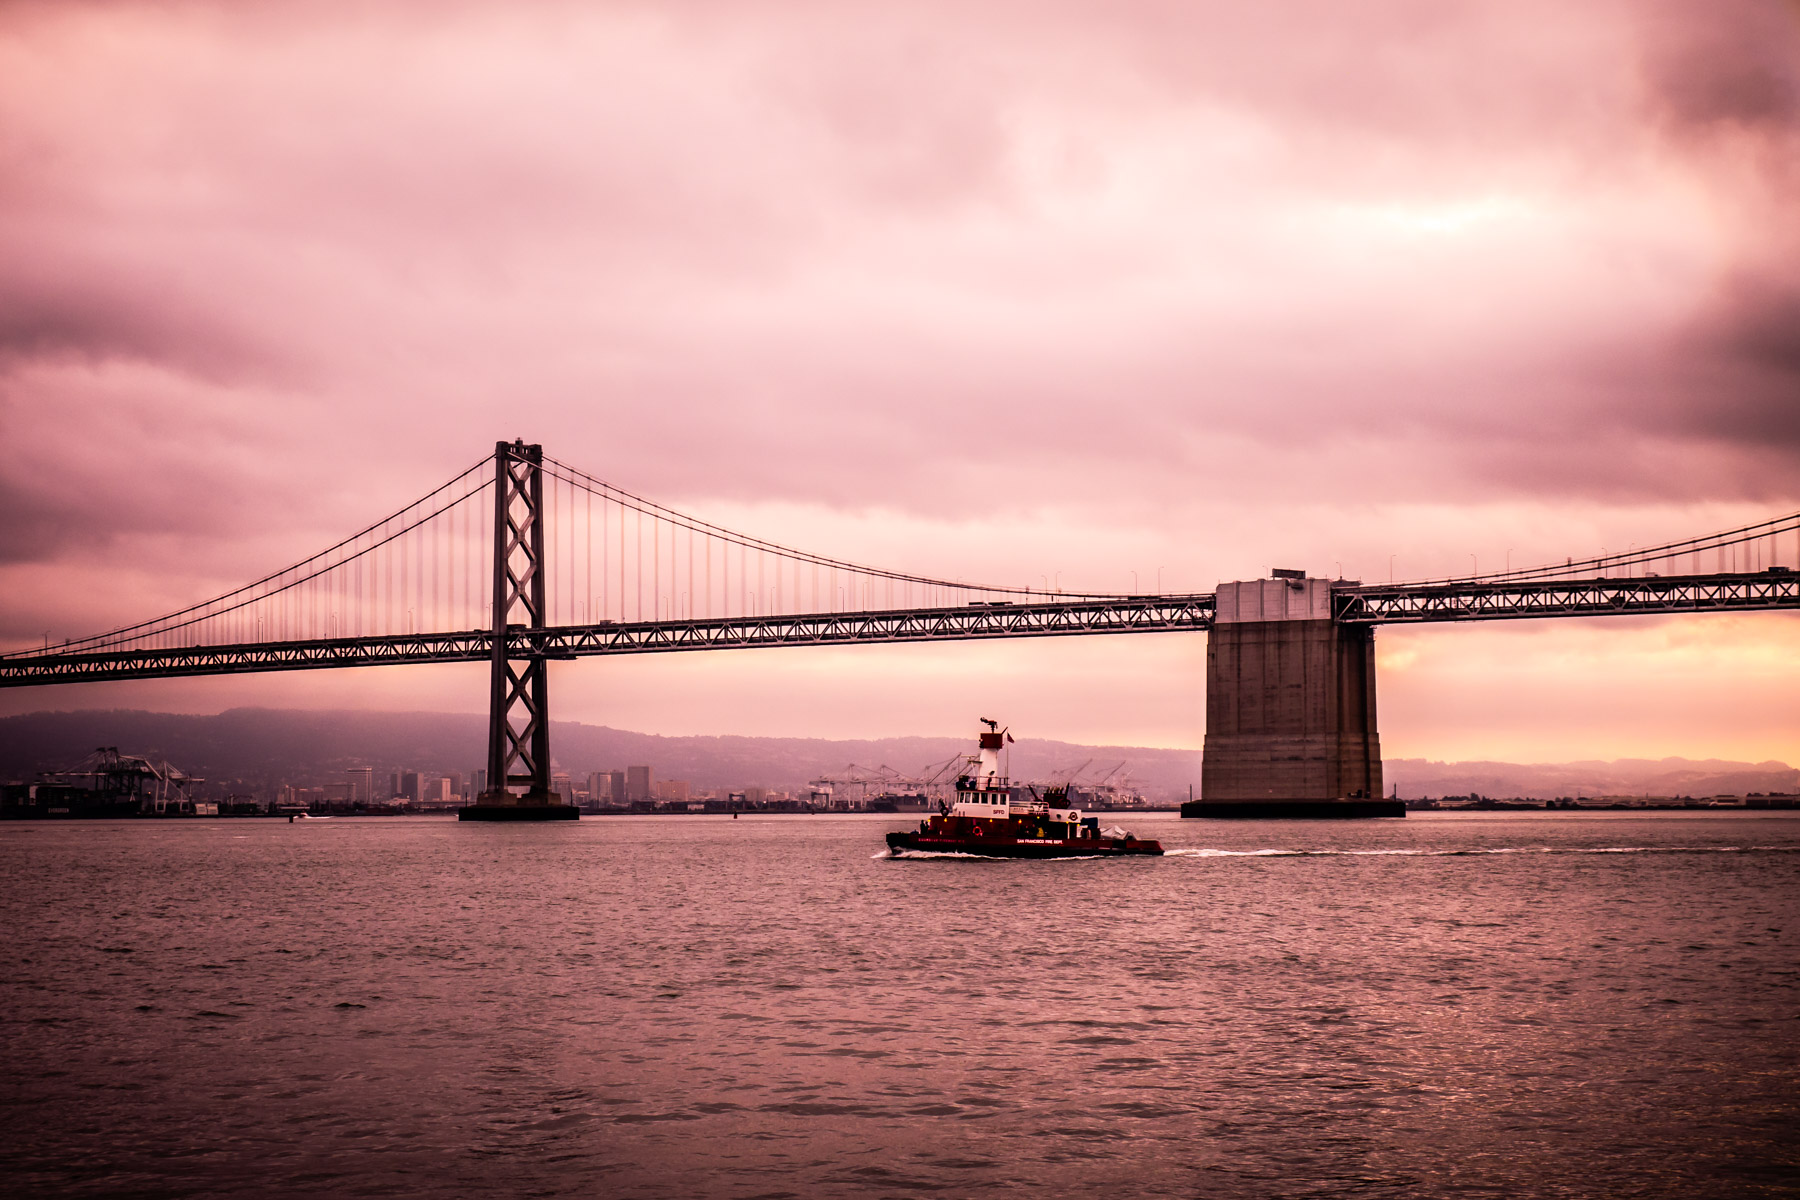 A San Francisco Fire Department boat traverses San Francisco Bay as the Bay Bridge rises to greet the morning sun.